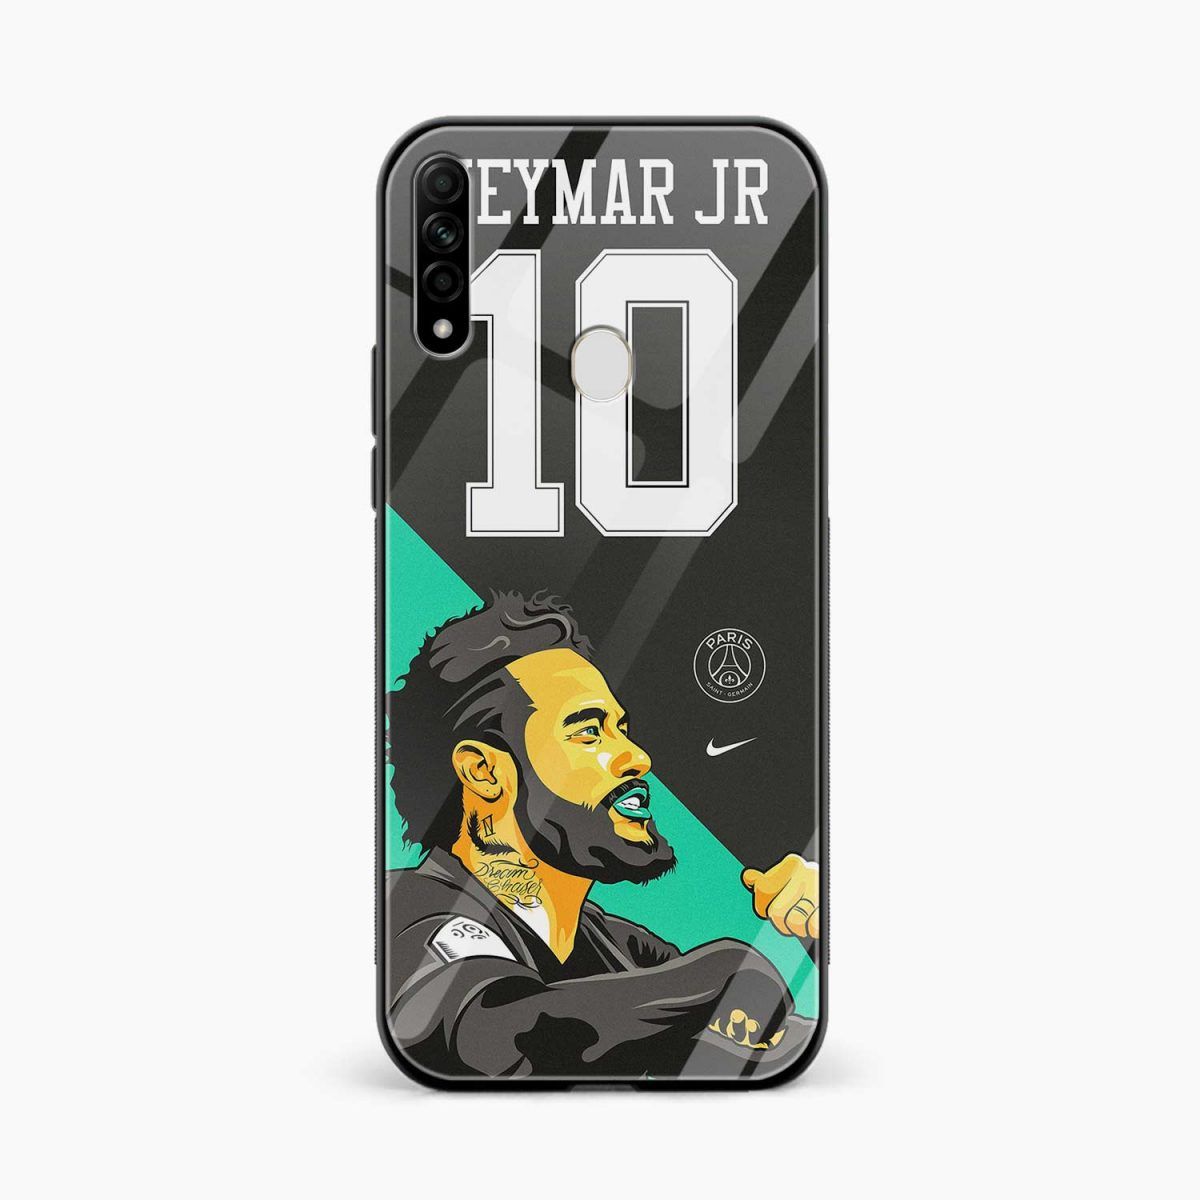 neymar jr 10 front view oppo a31 back cover